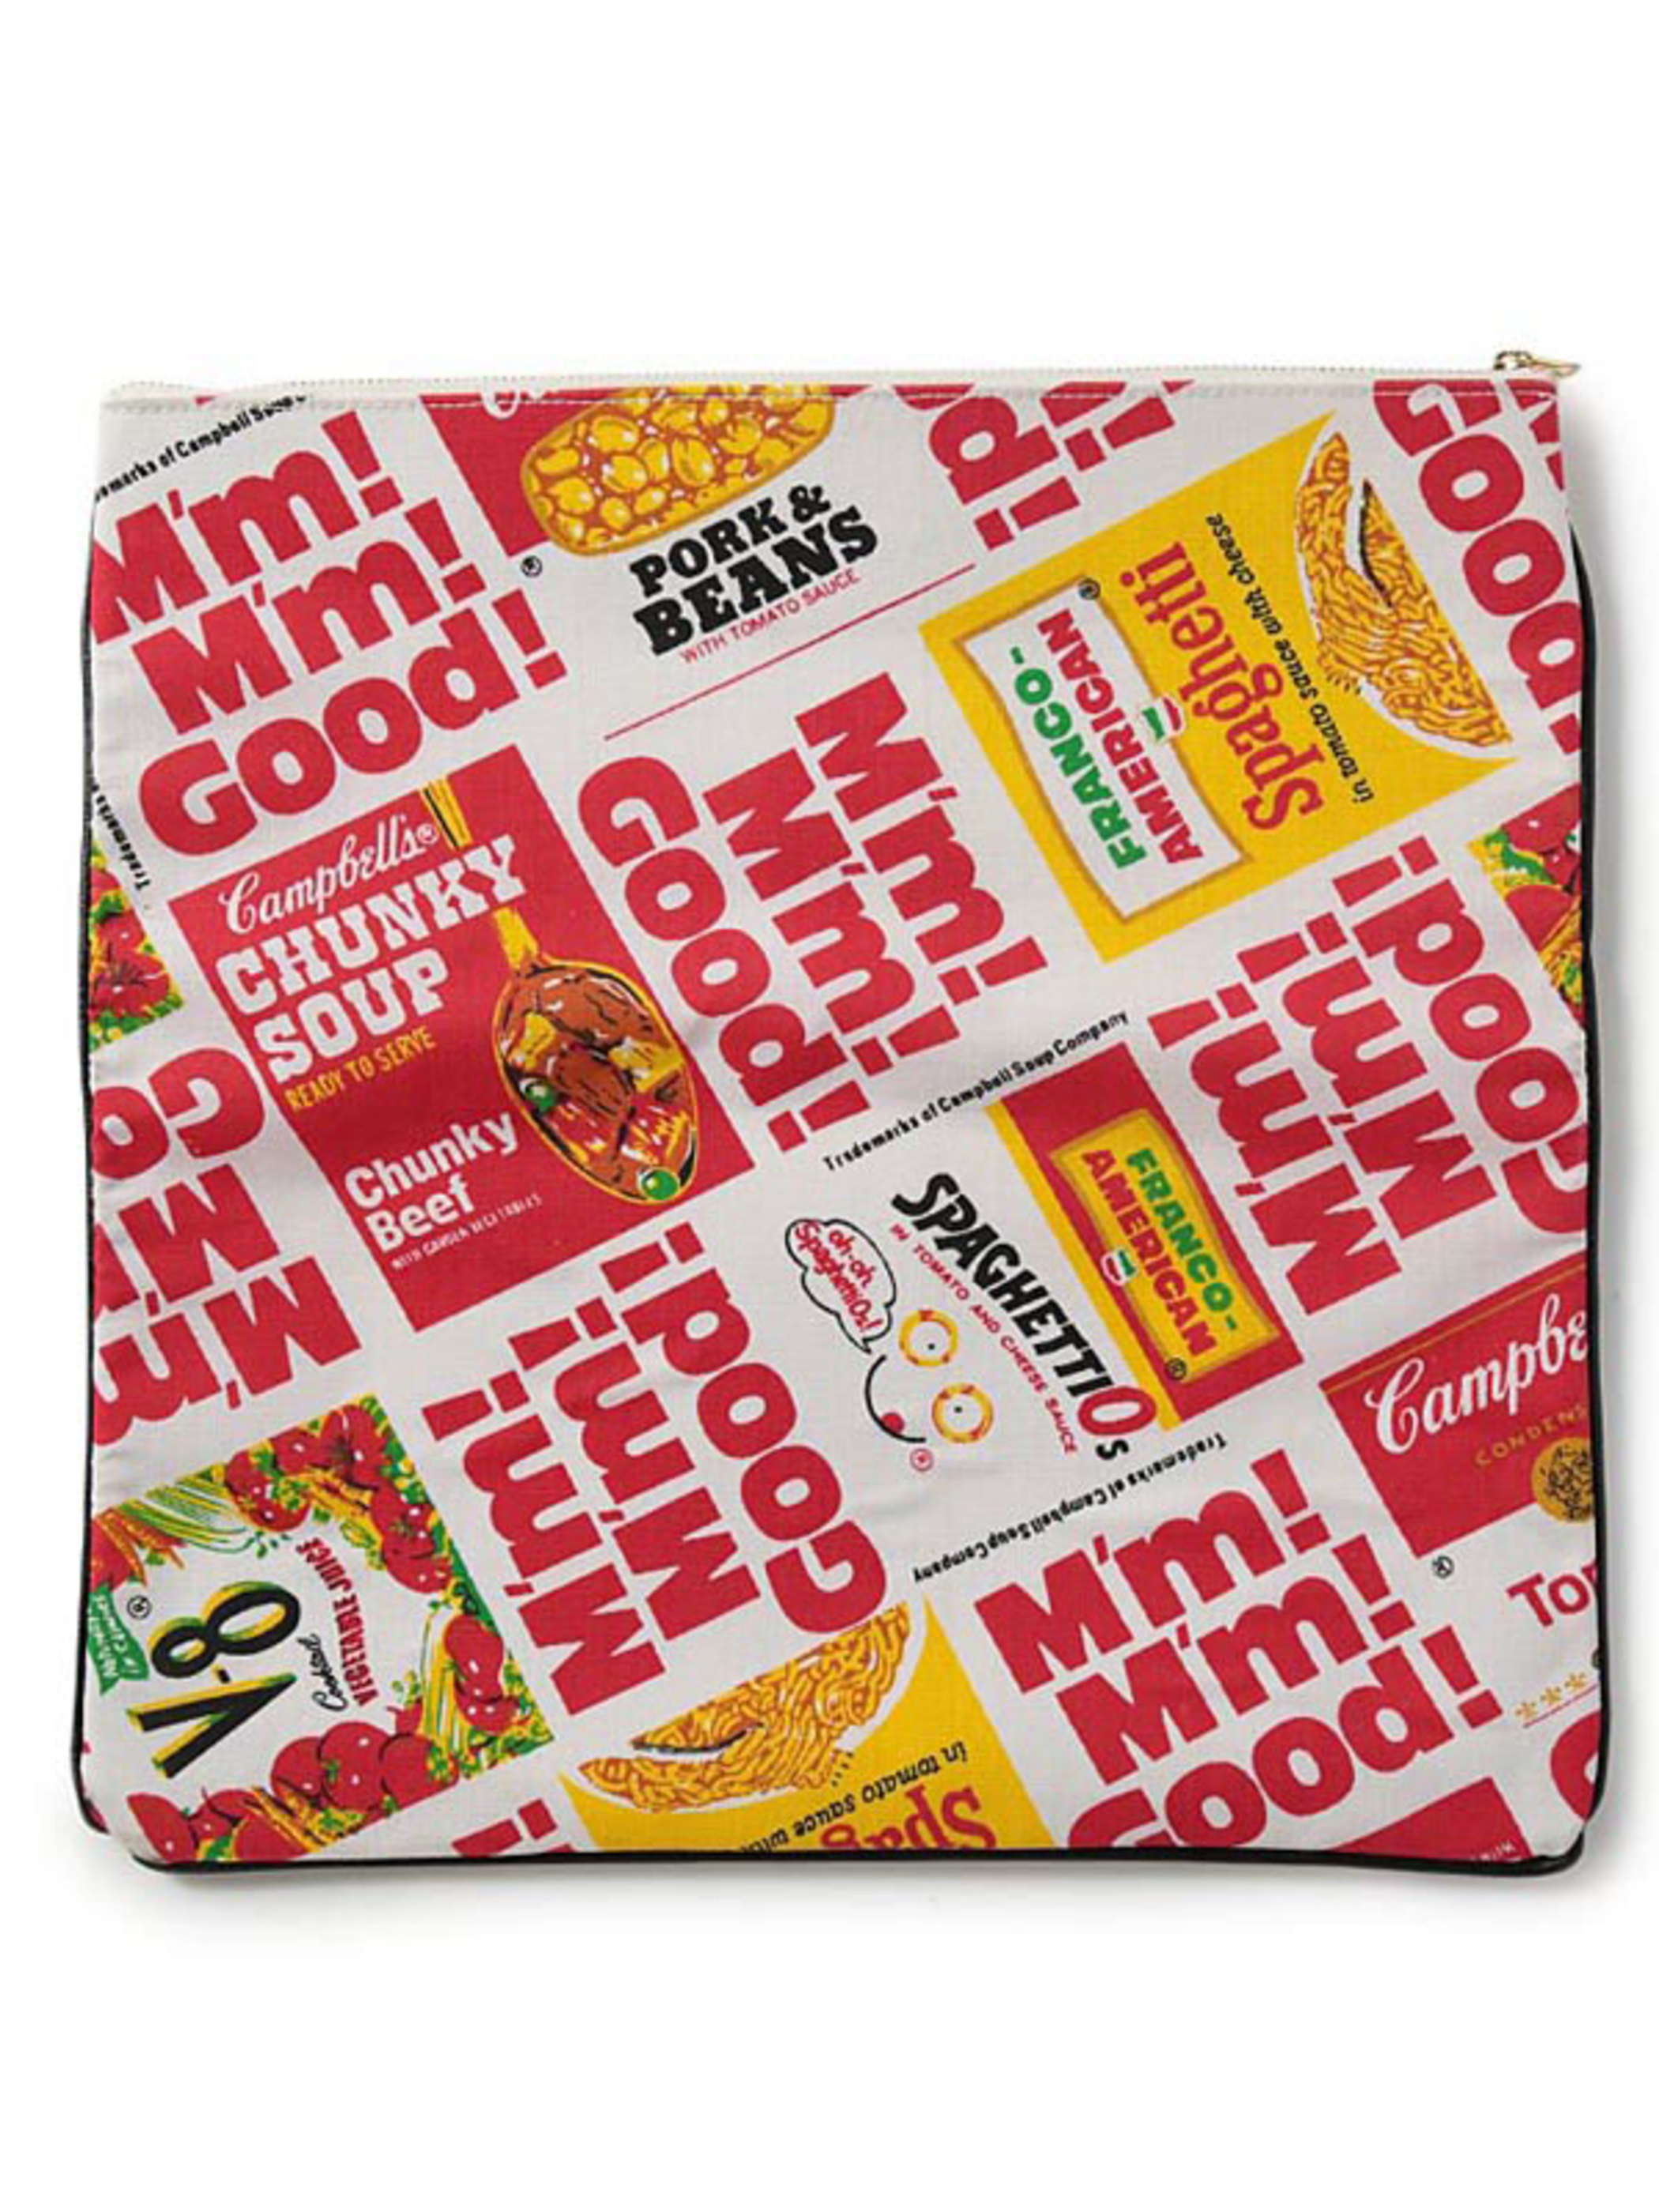 No.4 / Campbell Soup Clutch Bag